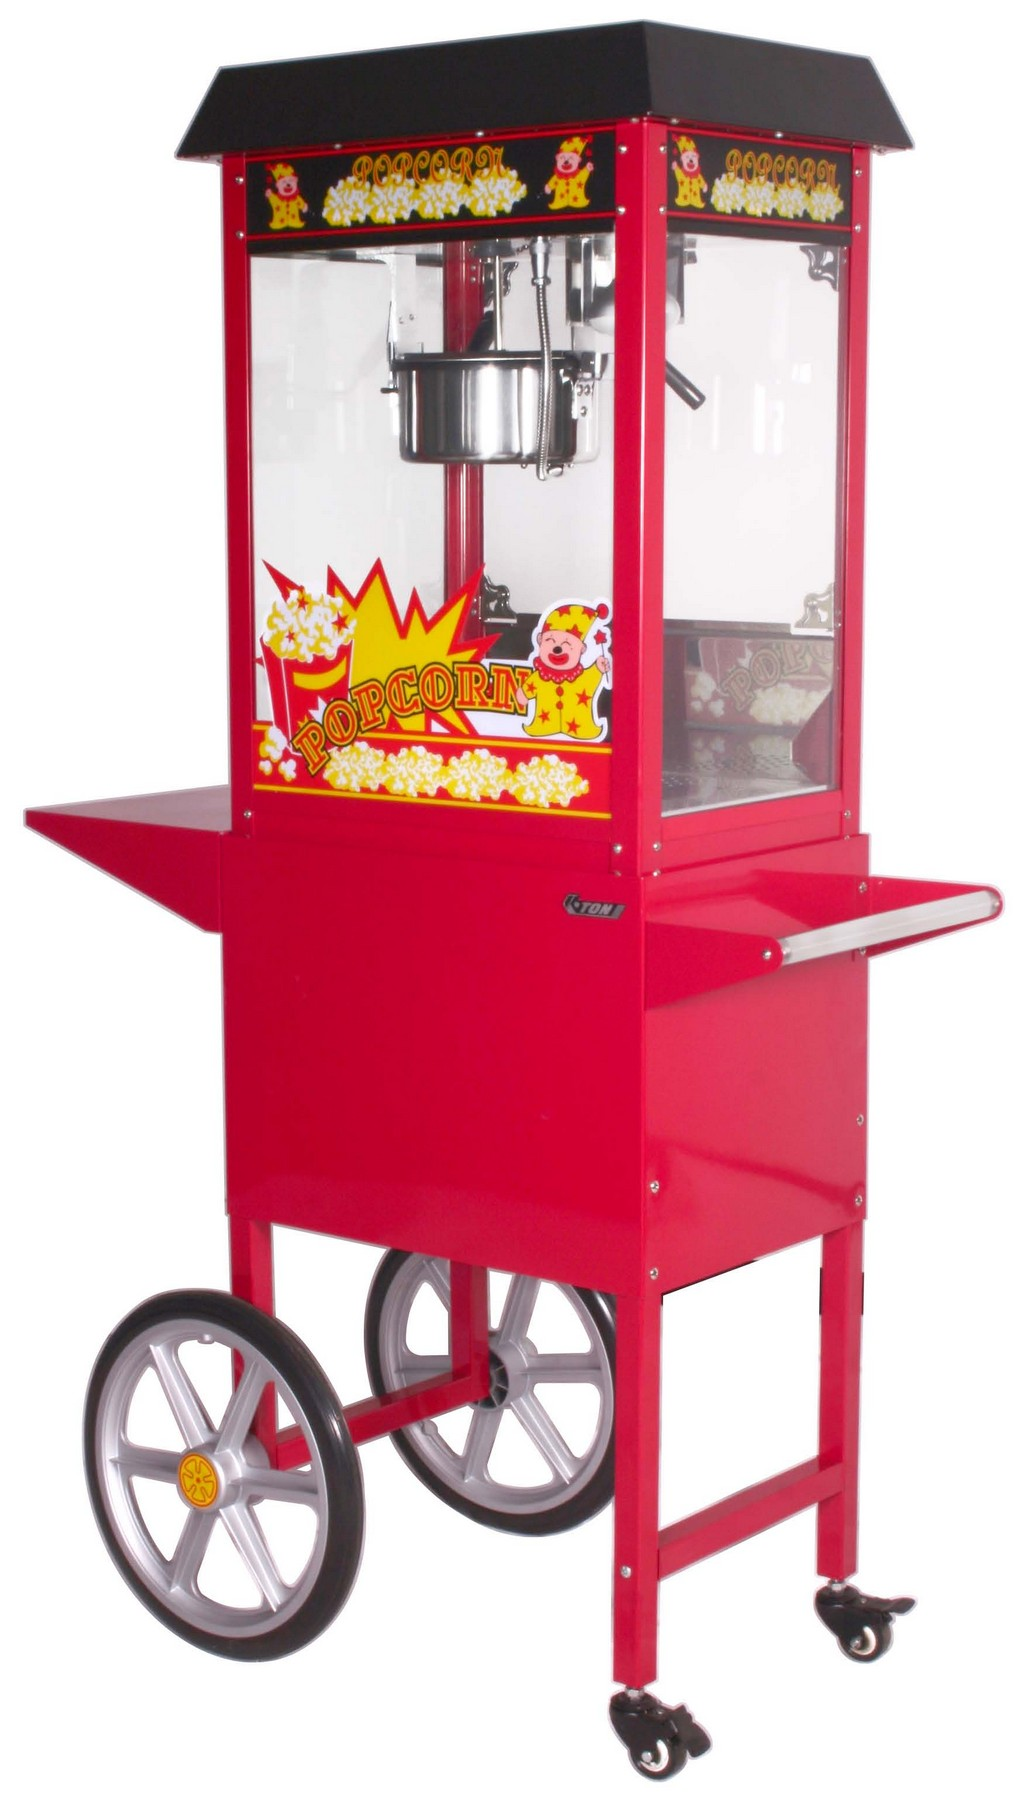 popcorn popper machine, nordic ware microwave popcorn popper, theater popcorn machine